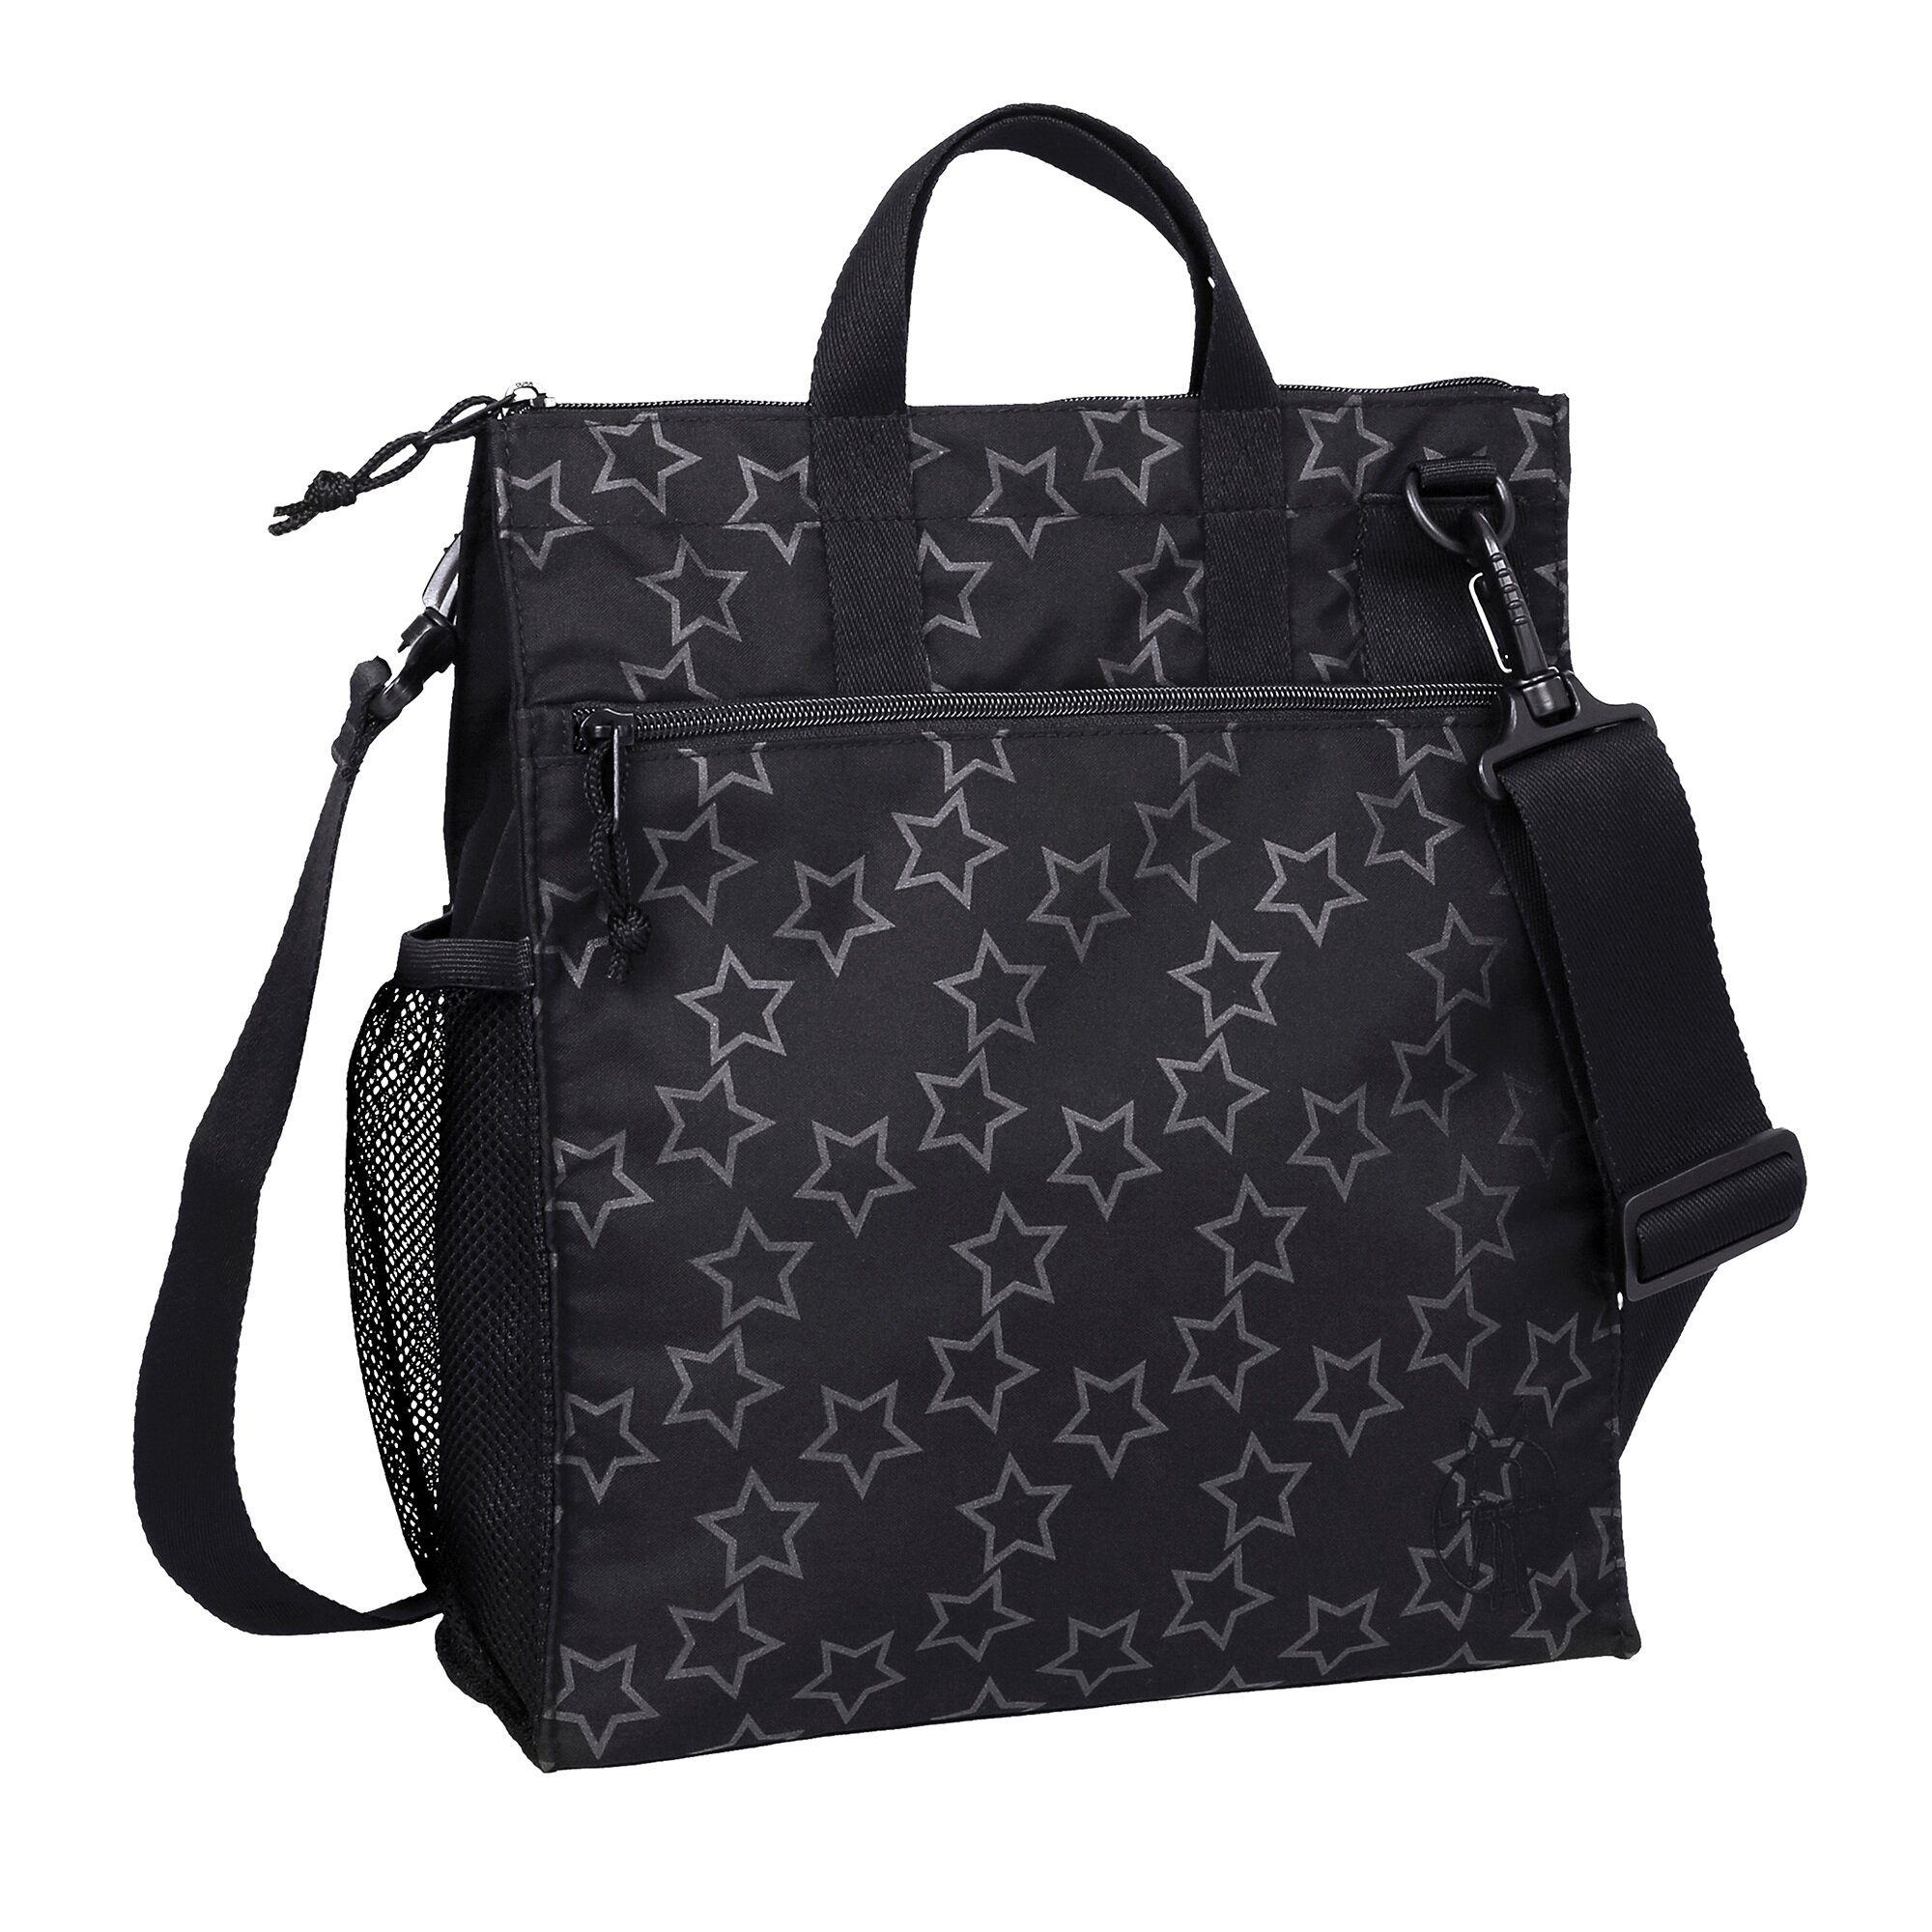 Casual Wickeltasche Buggy Bag Reflective Star schwarz